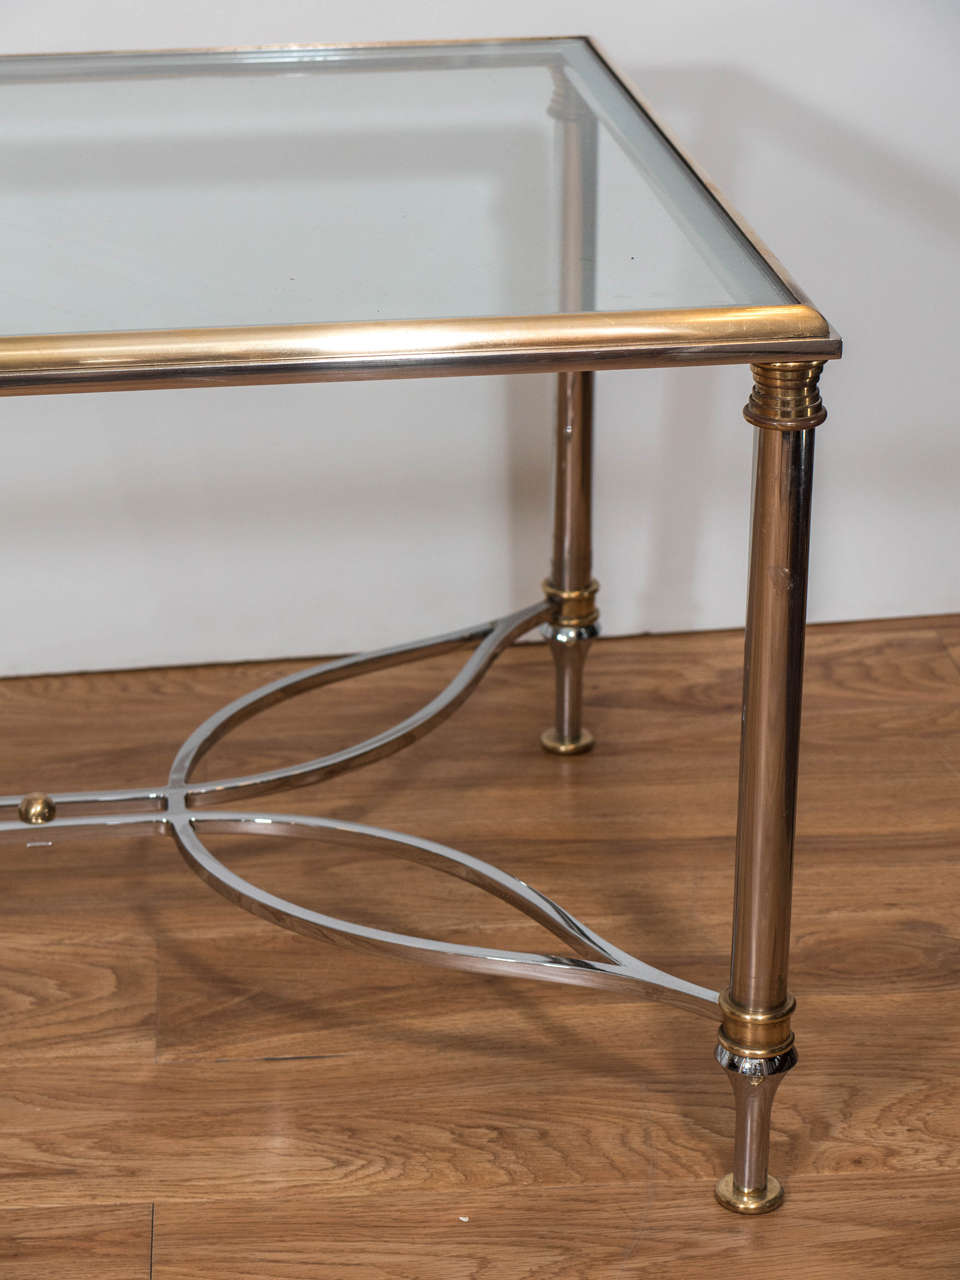 1970s Brass Rectangular Coffee And Cocktail Table With Elegant Chrome Base For Sale At 1stdibs